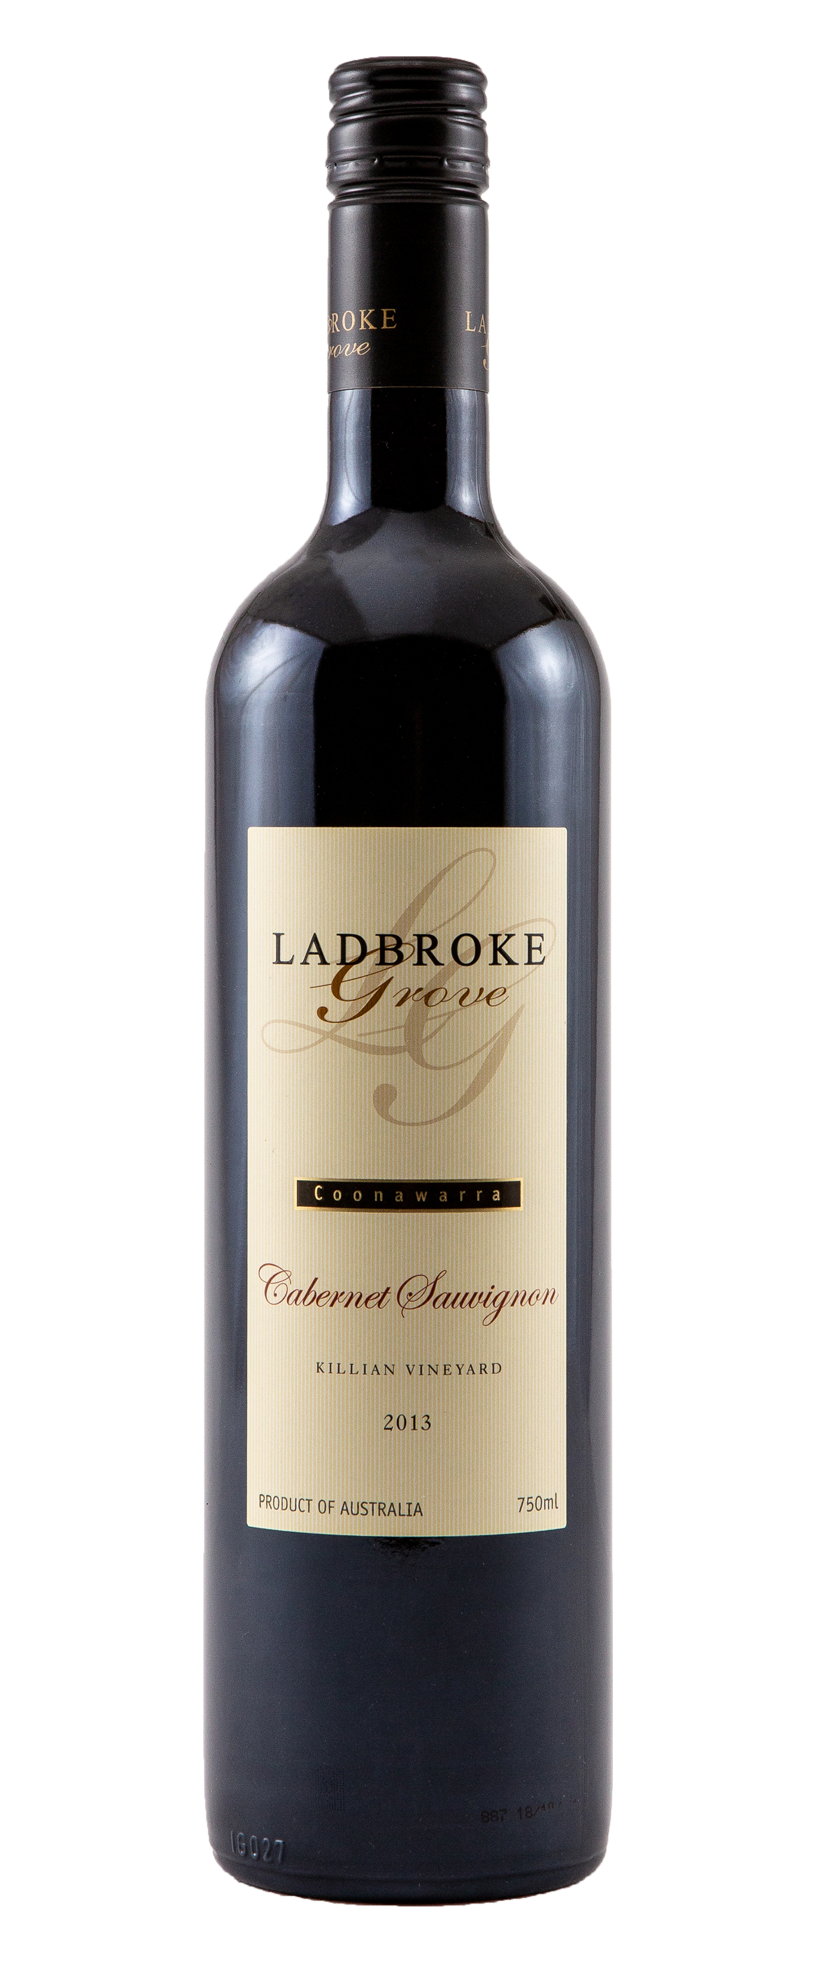 2013 Ladbroke Grove Cabernet Sauvignon Killian Vineyard